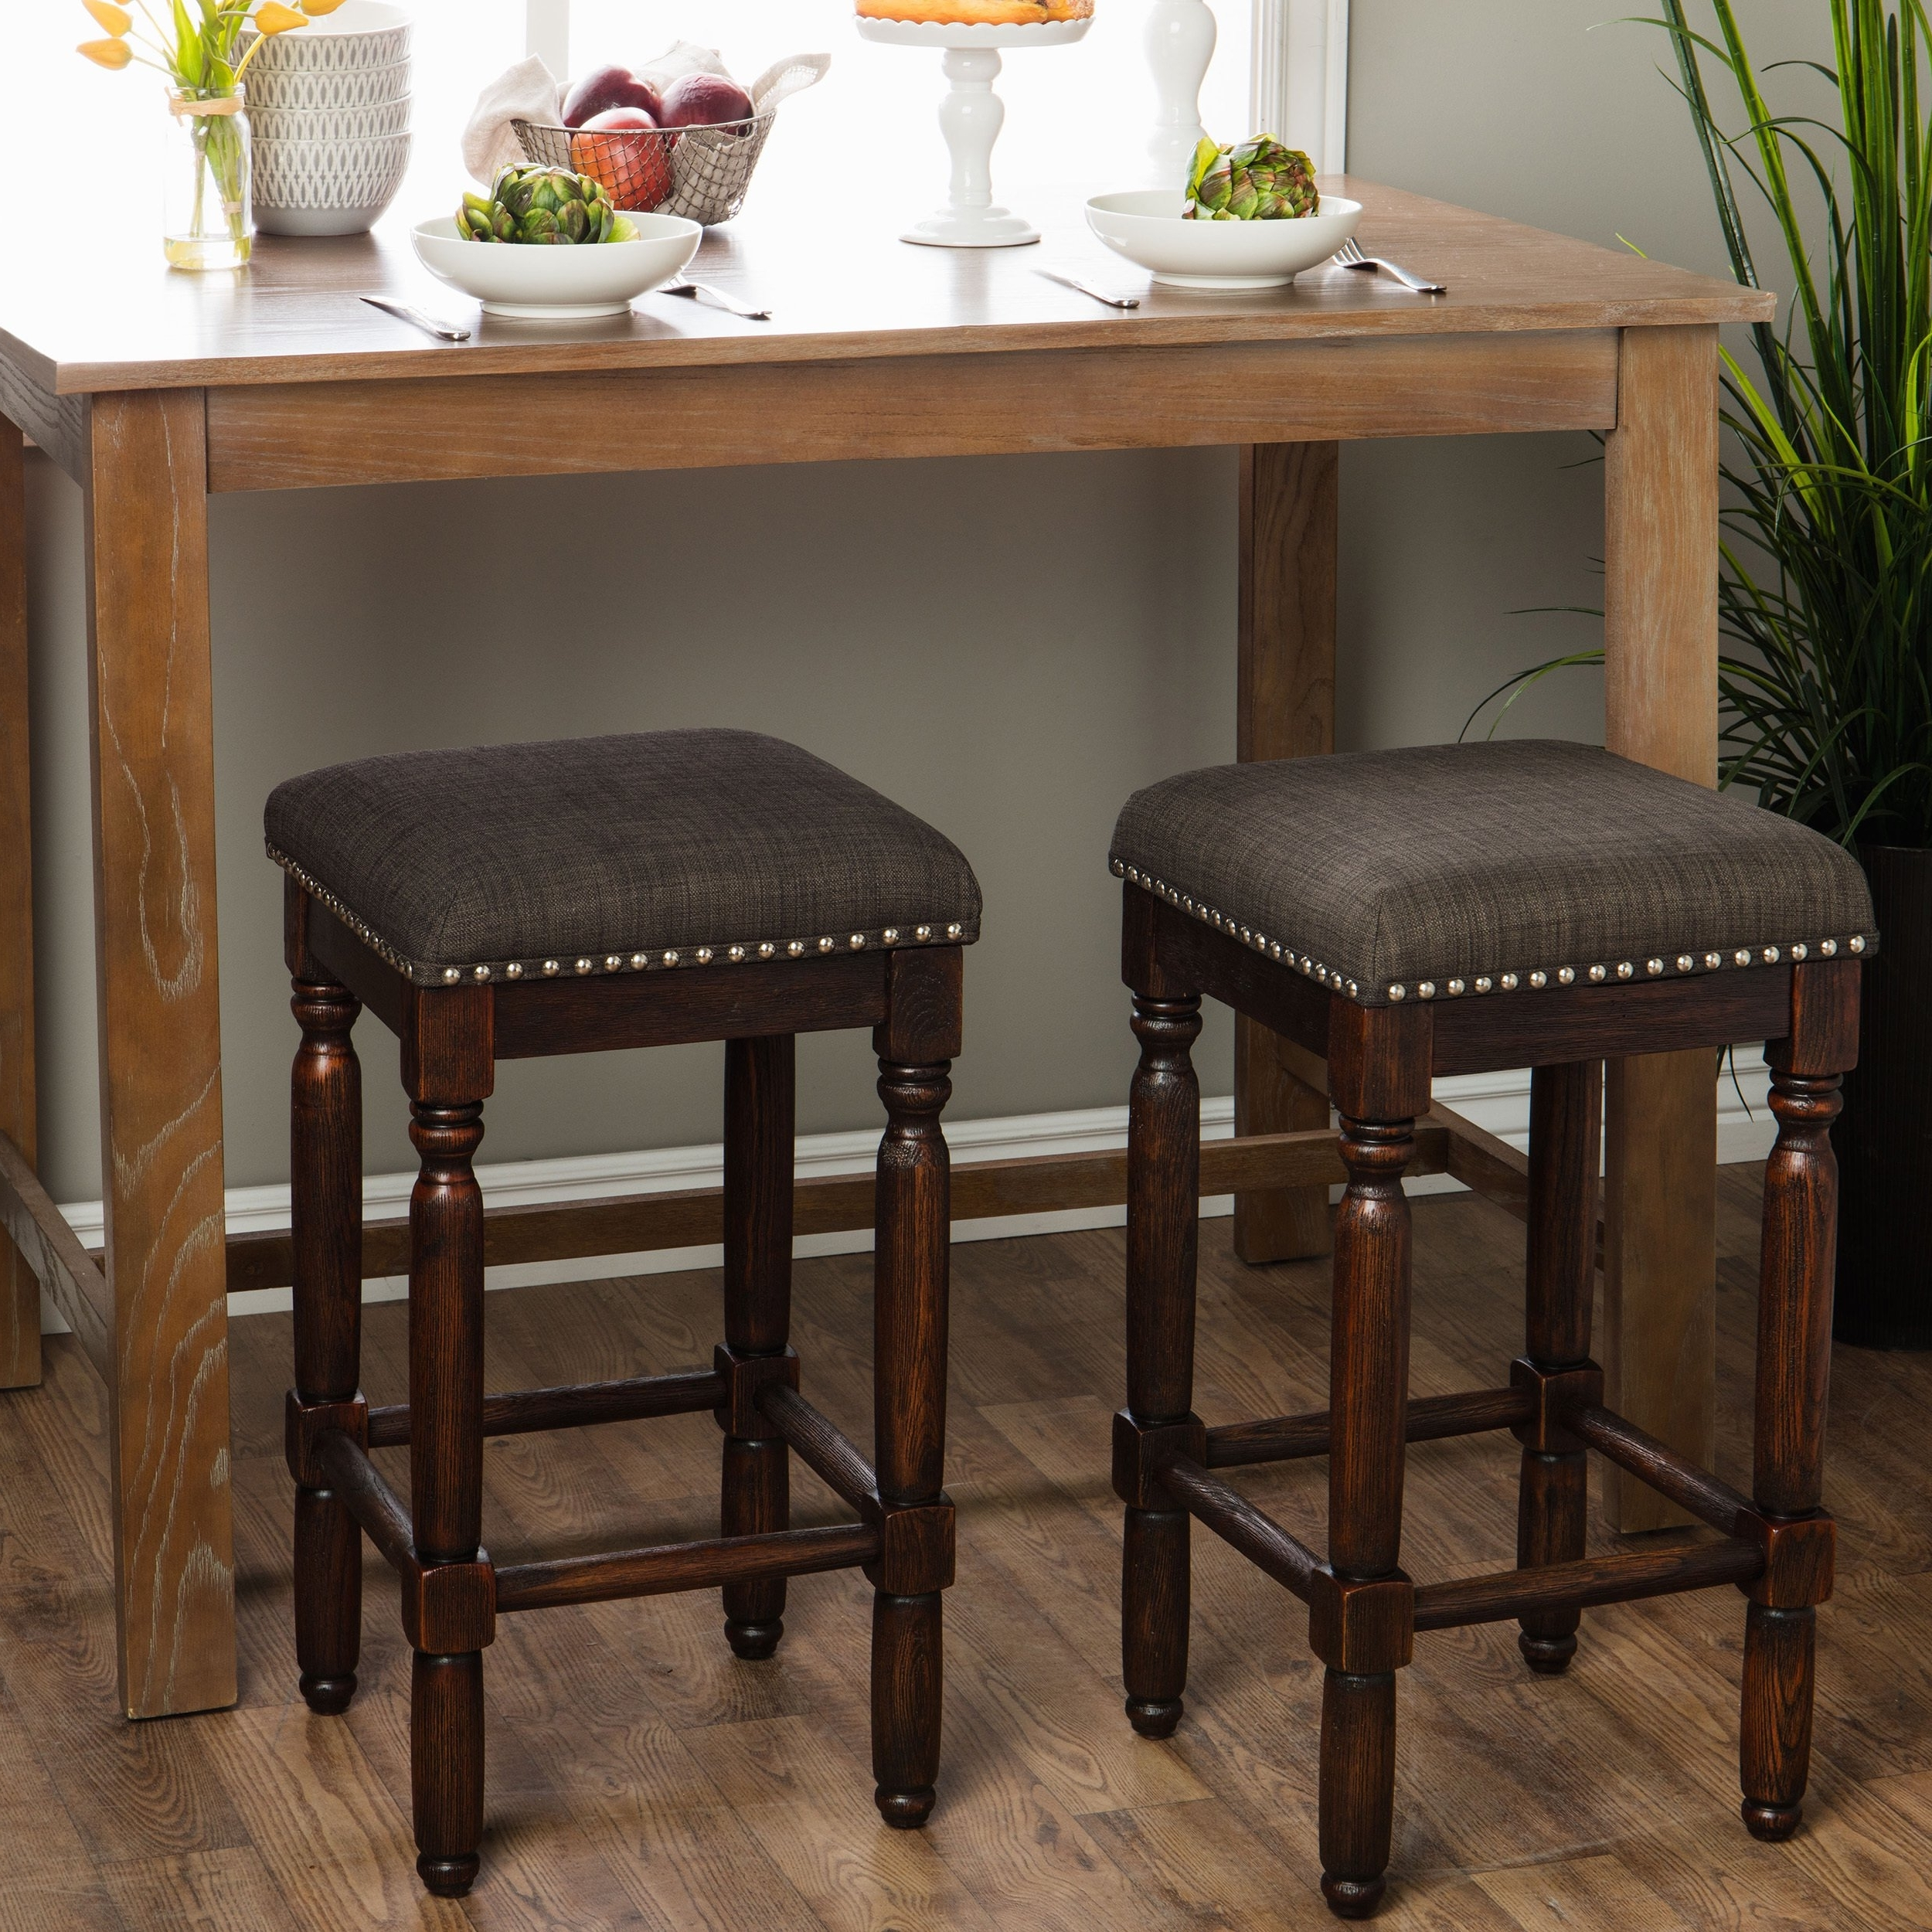 Most Recent Shop Carbon Loft Branson Coffee Counter Stools (Set Of 2) – Free Within Laurent 7 Piece Counter Sets With Upholstered Counterstools (View 16 of 25)